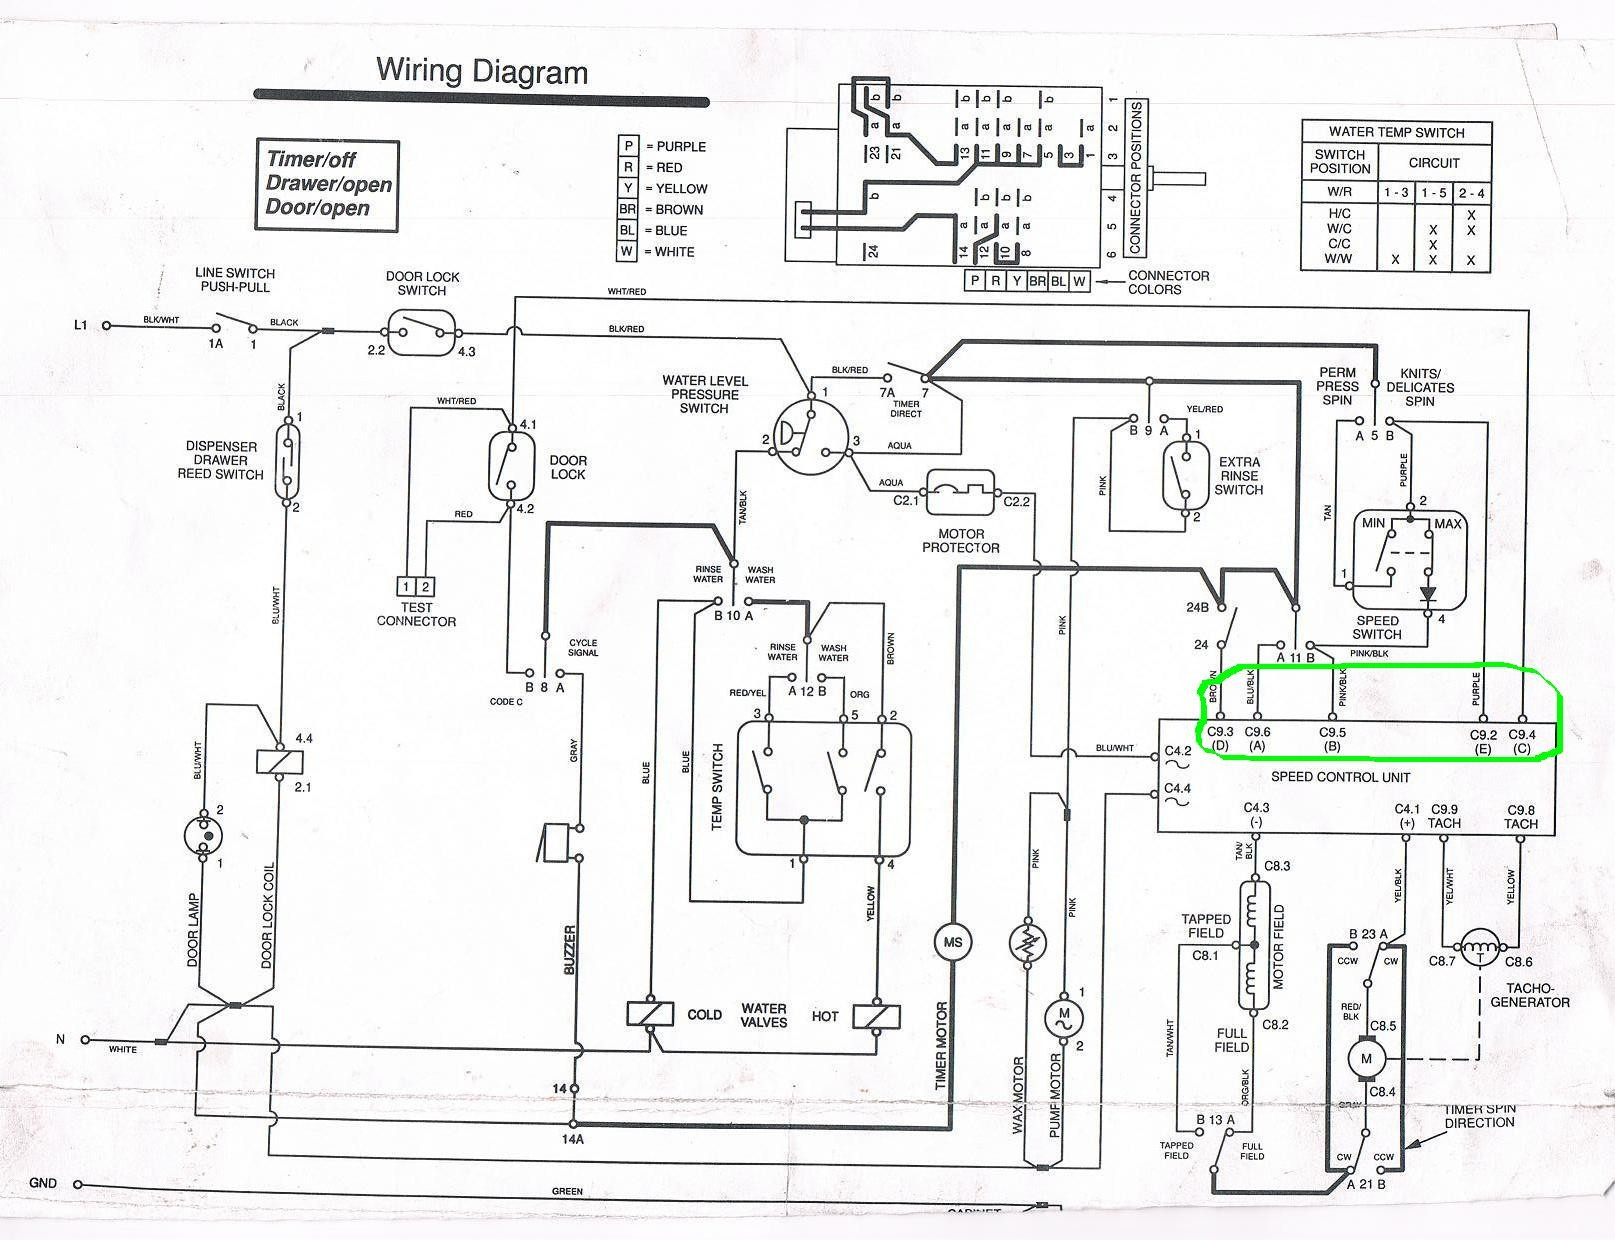 Whirlpool Duet Dryer Heating Element Wiring Diagram Unique